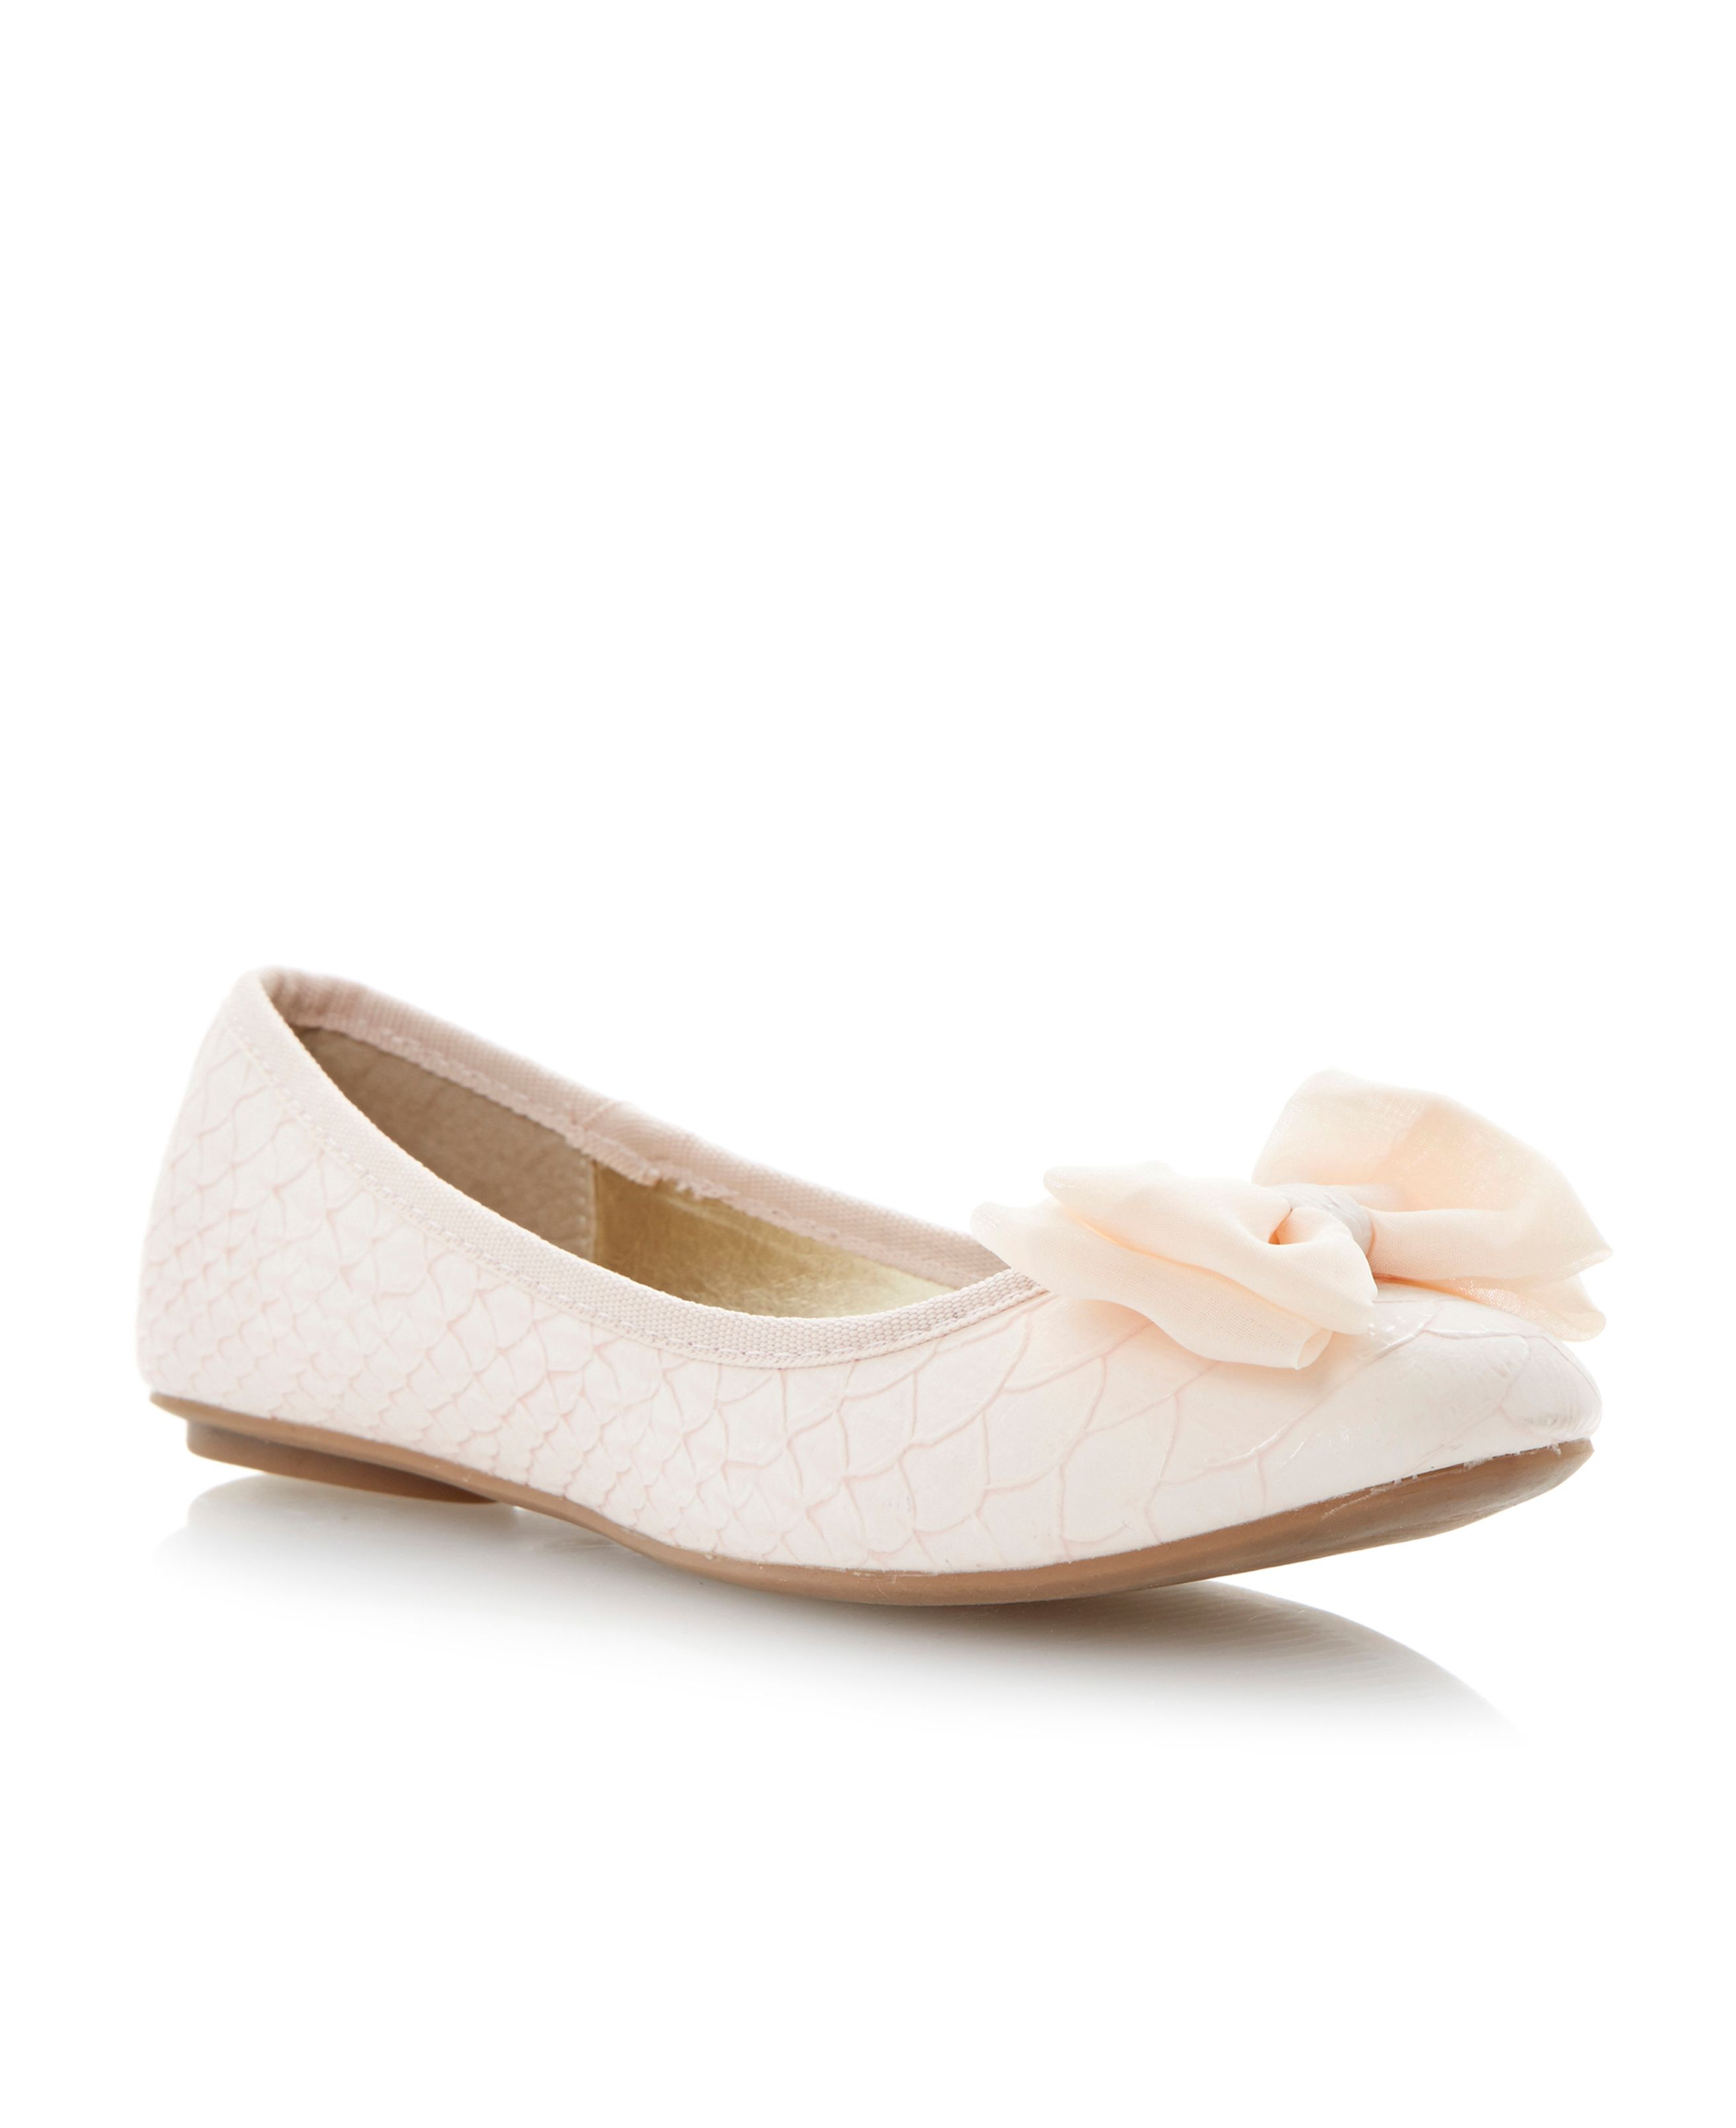 Mona chiffon bow ballerina shoes